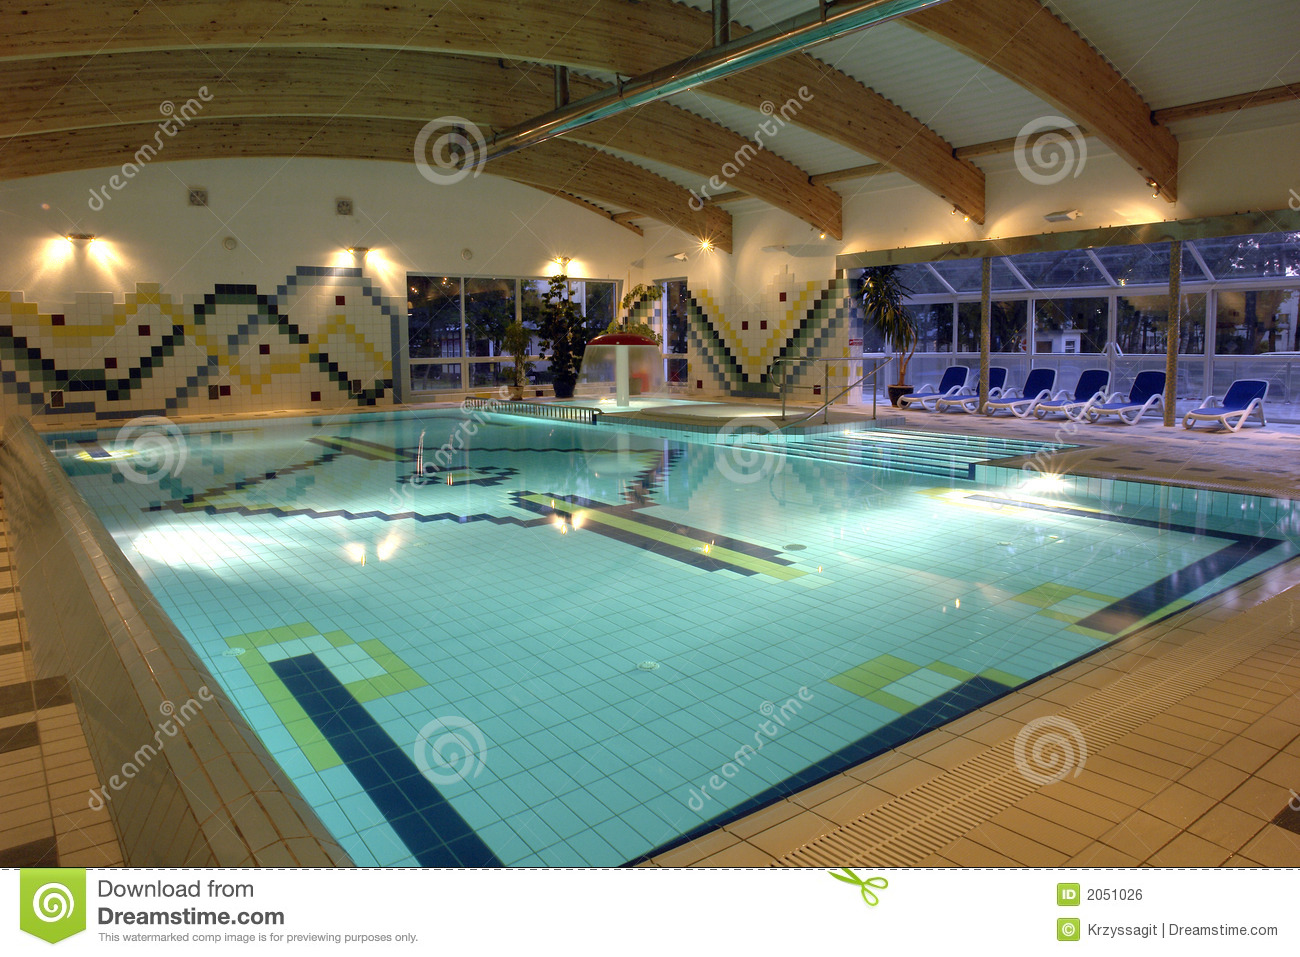 Swimming pool indoor empty royalty free stock image for Empty swimming pool